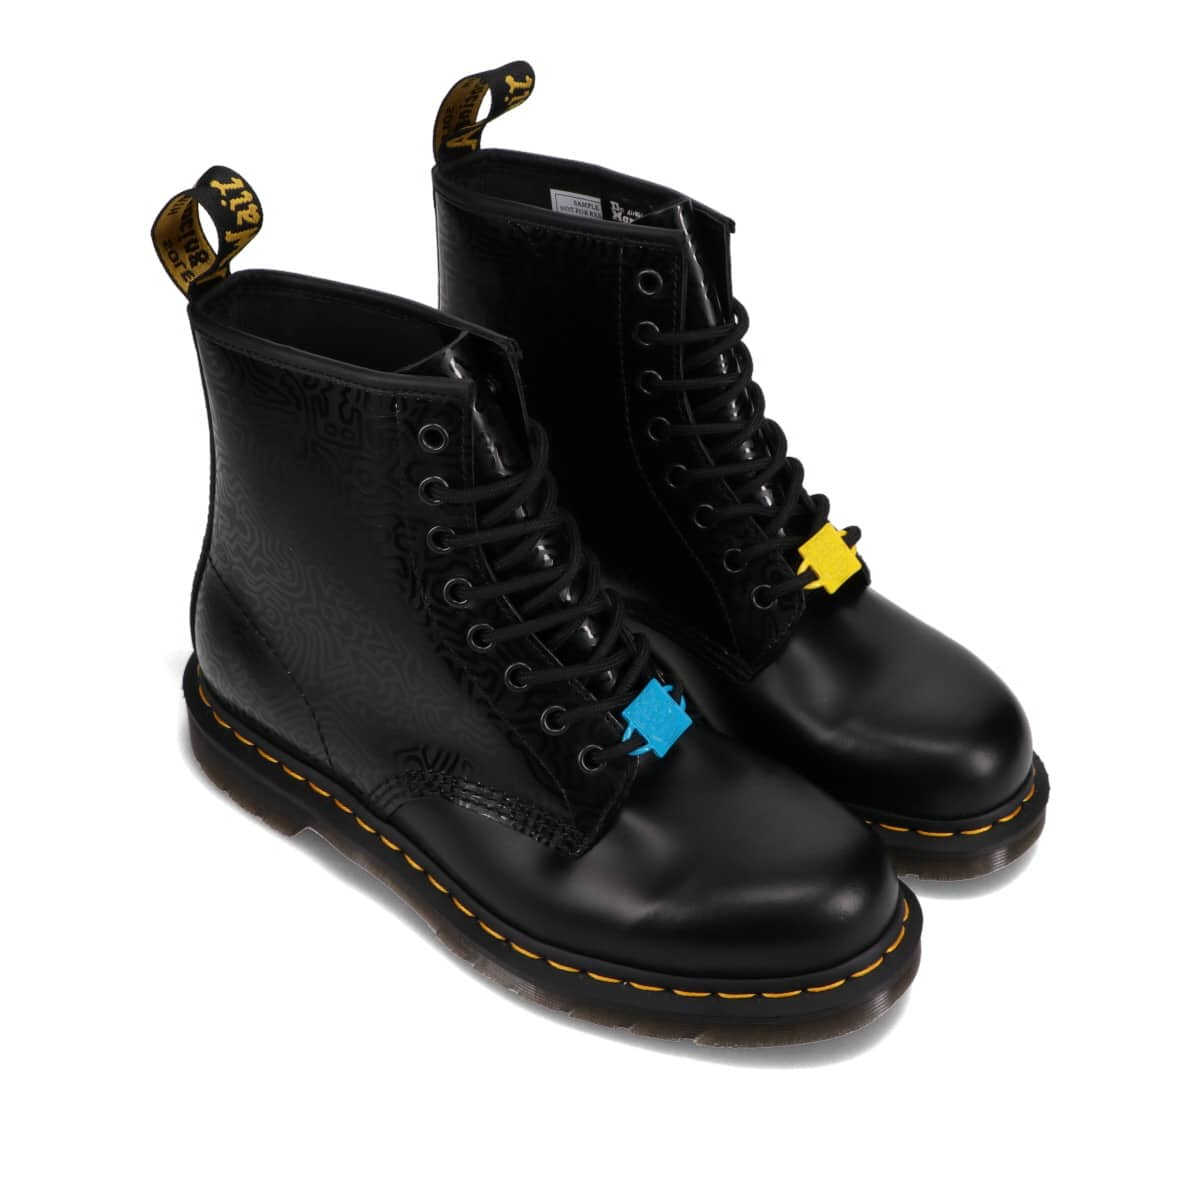 Dr.Martens KEITH HARING 1460 KH FIG BLACK+MULTI KH FIG SMOOTH BLACK 21SS-I_photo_large